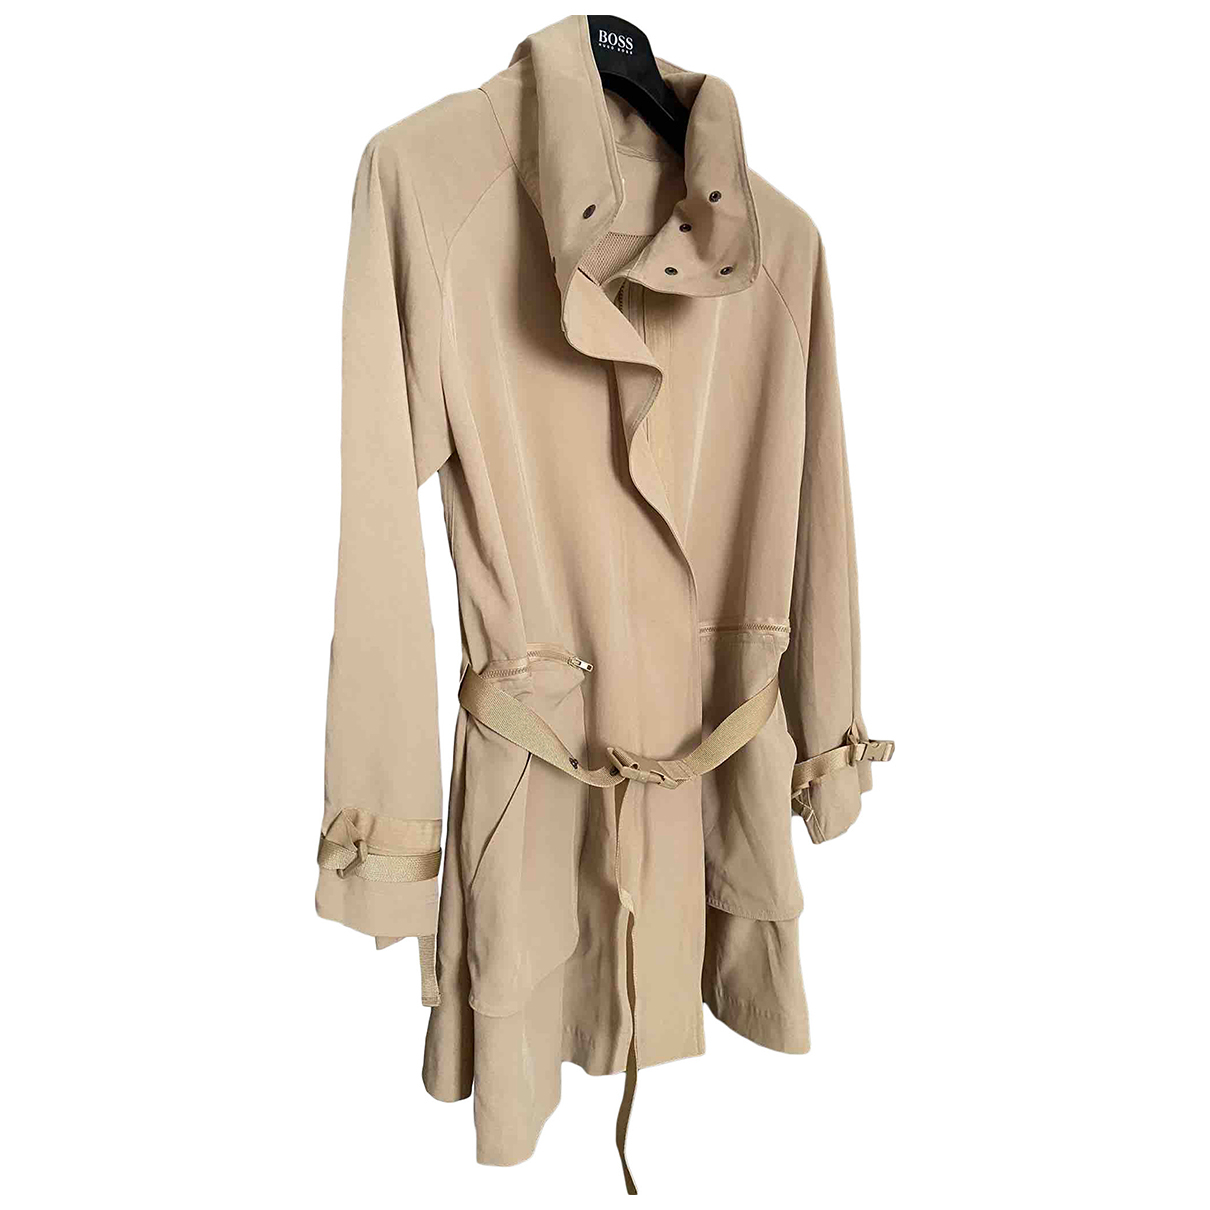 Balmain N Beige coat for Women L International